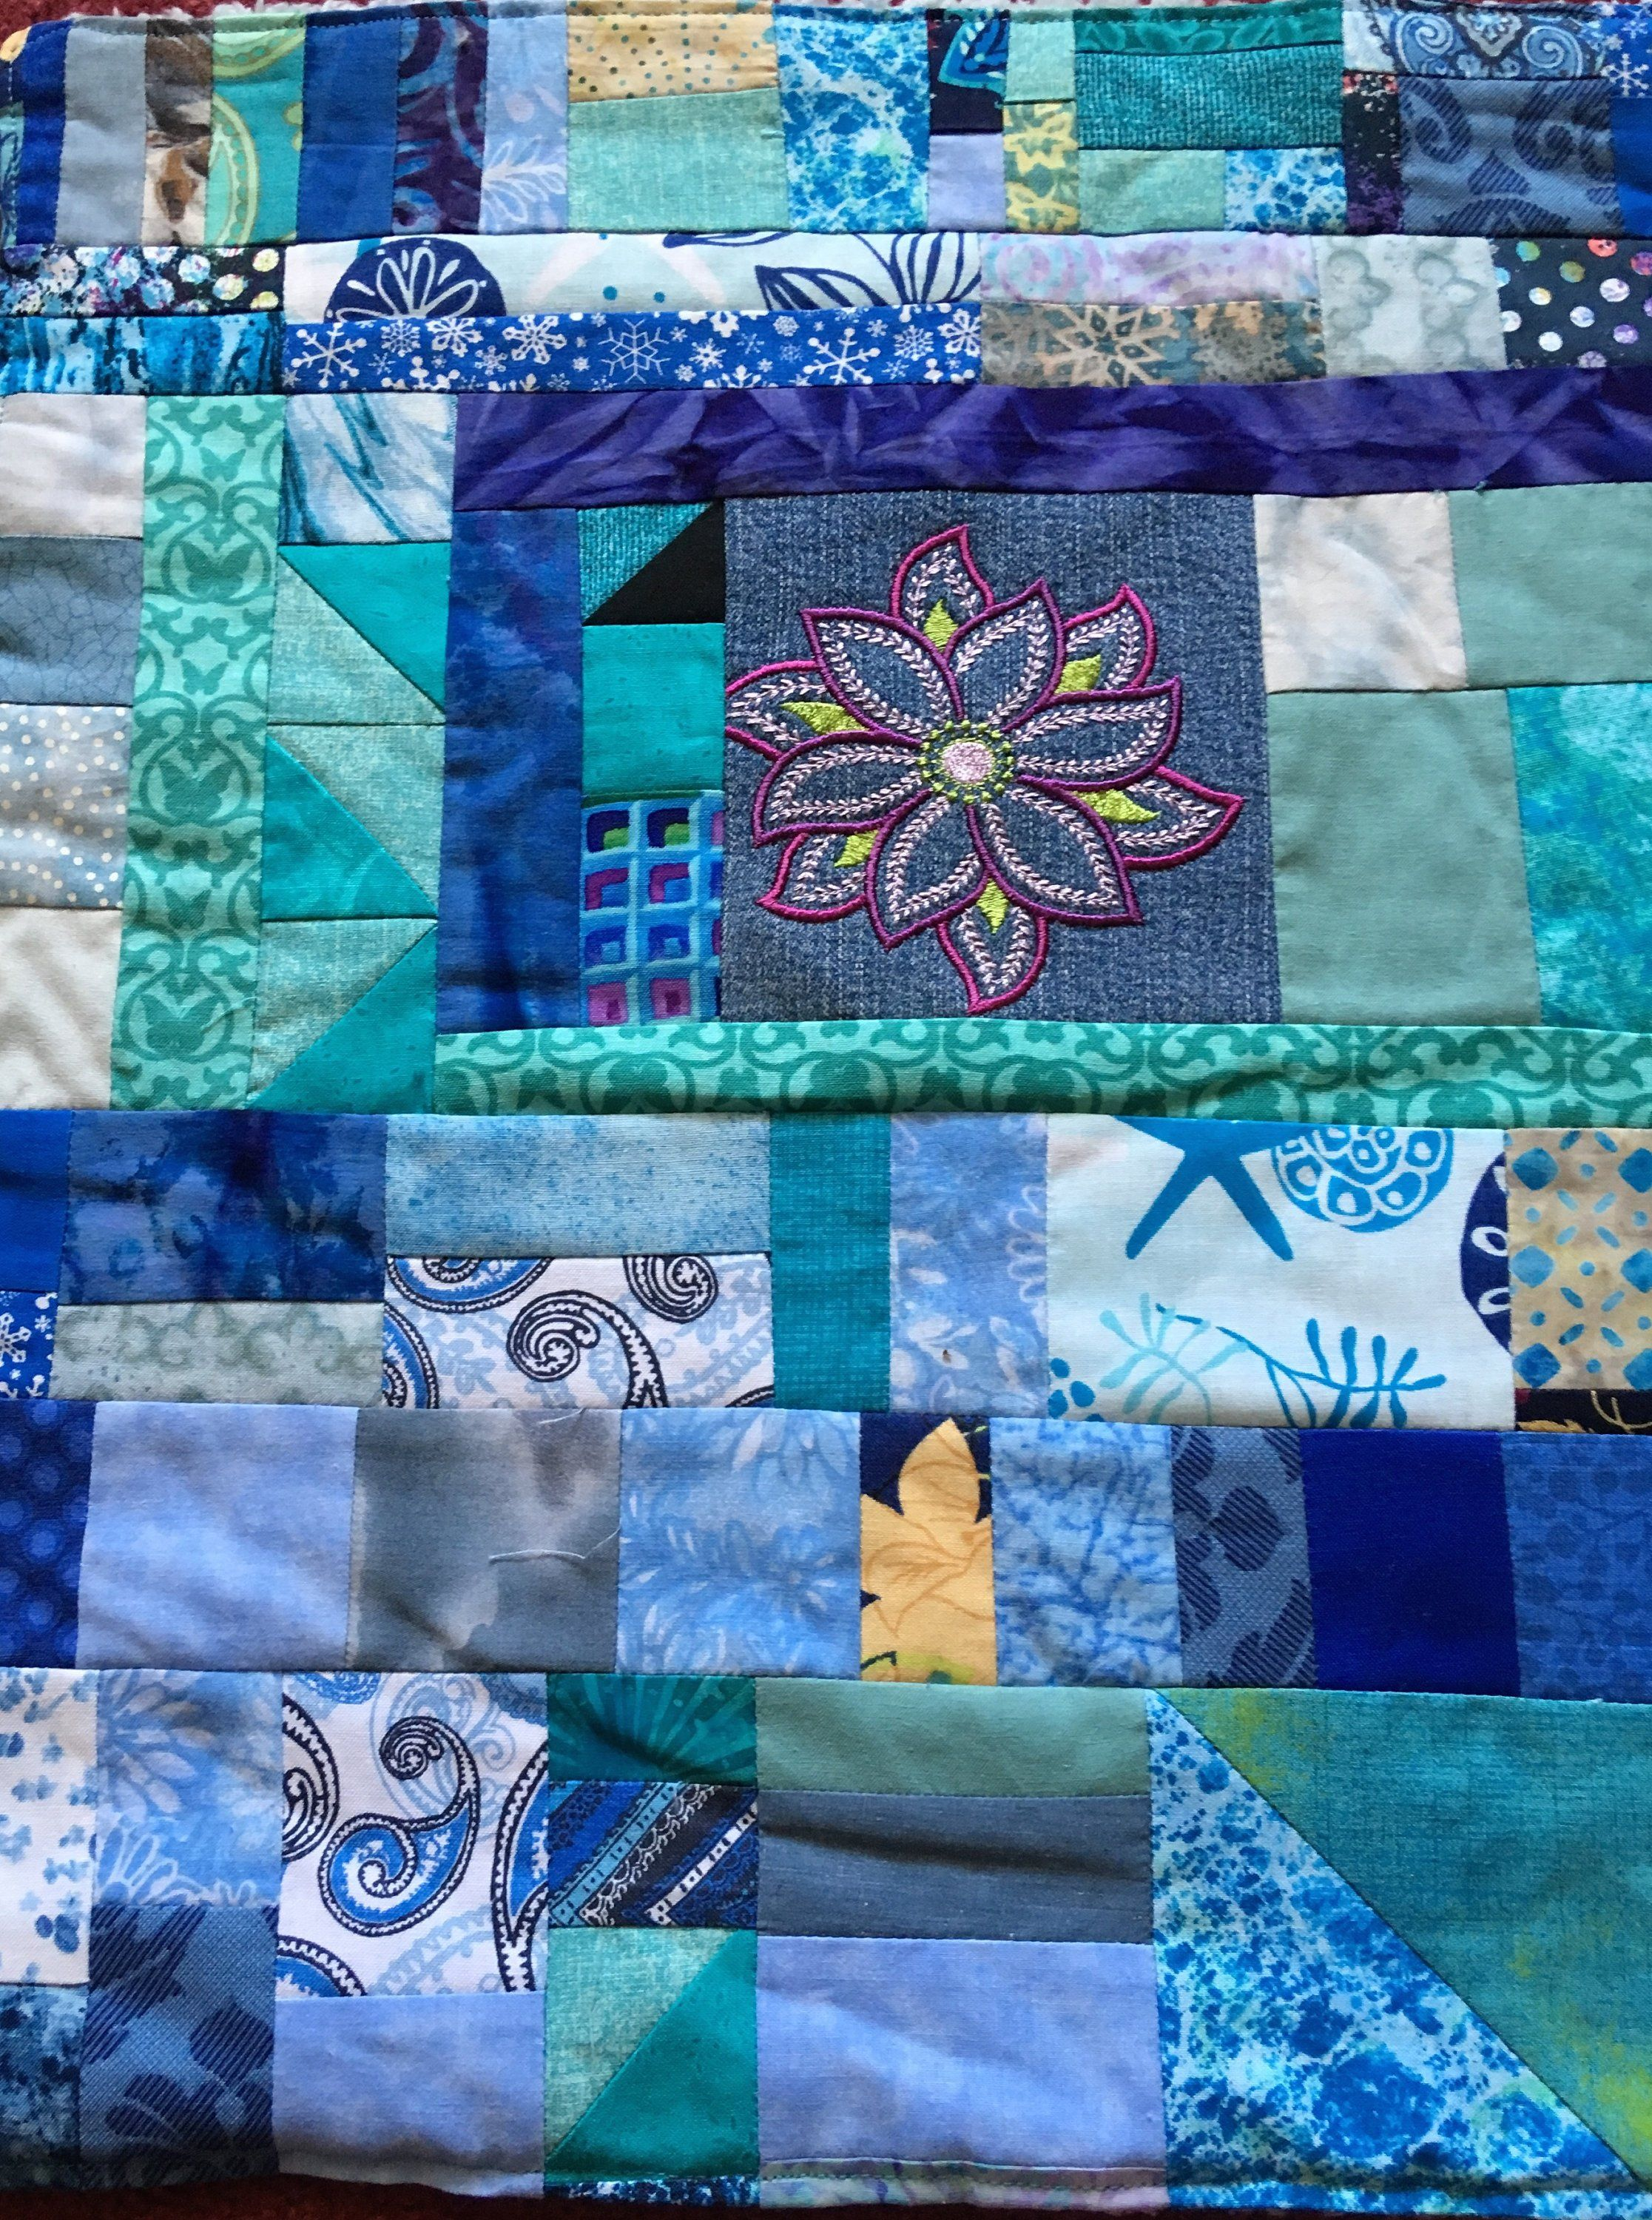 Blue Embroidered American Girl Doll Quilt With Plush